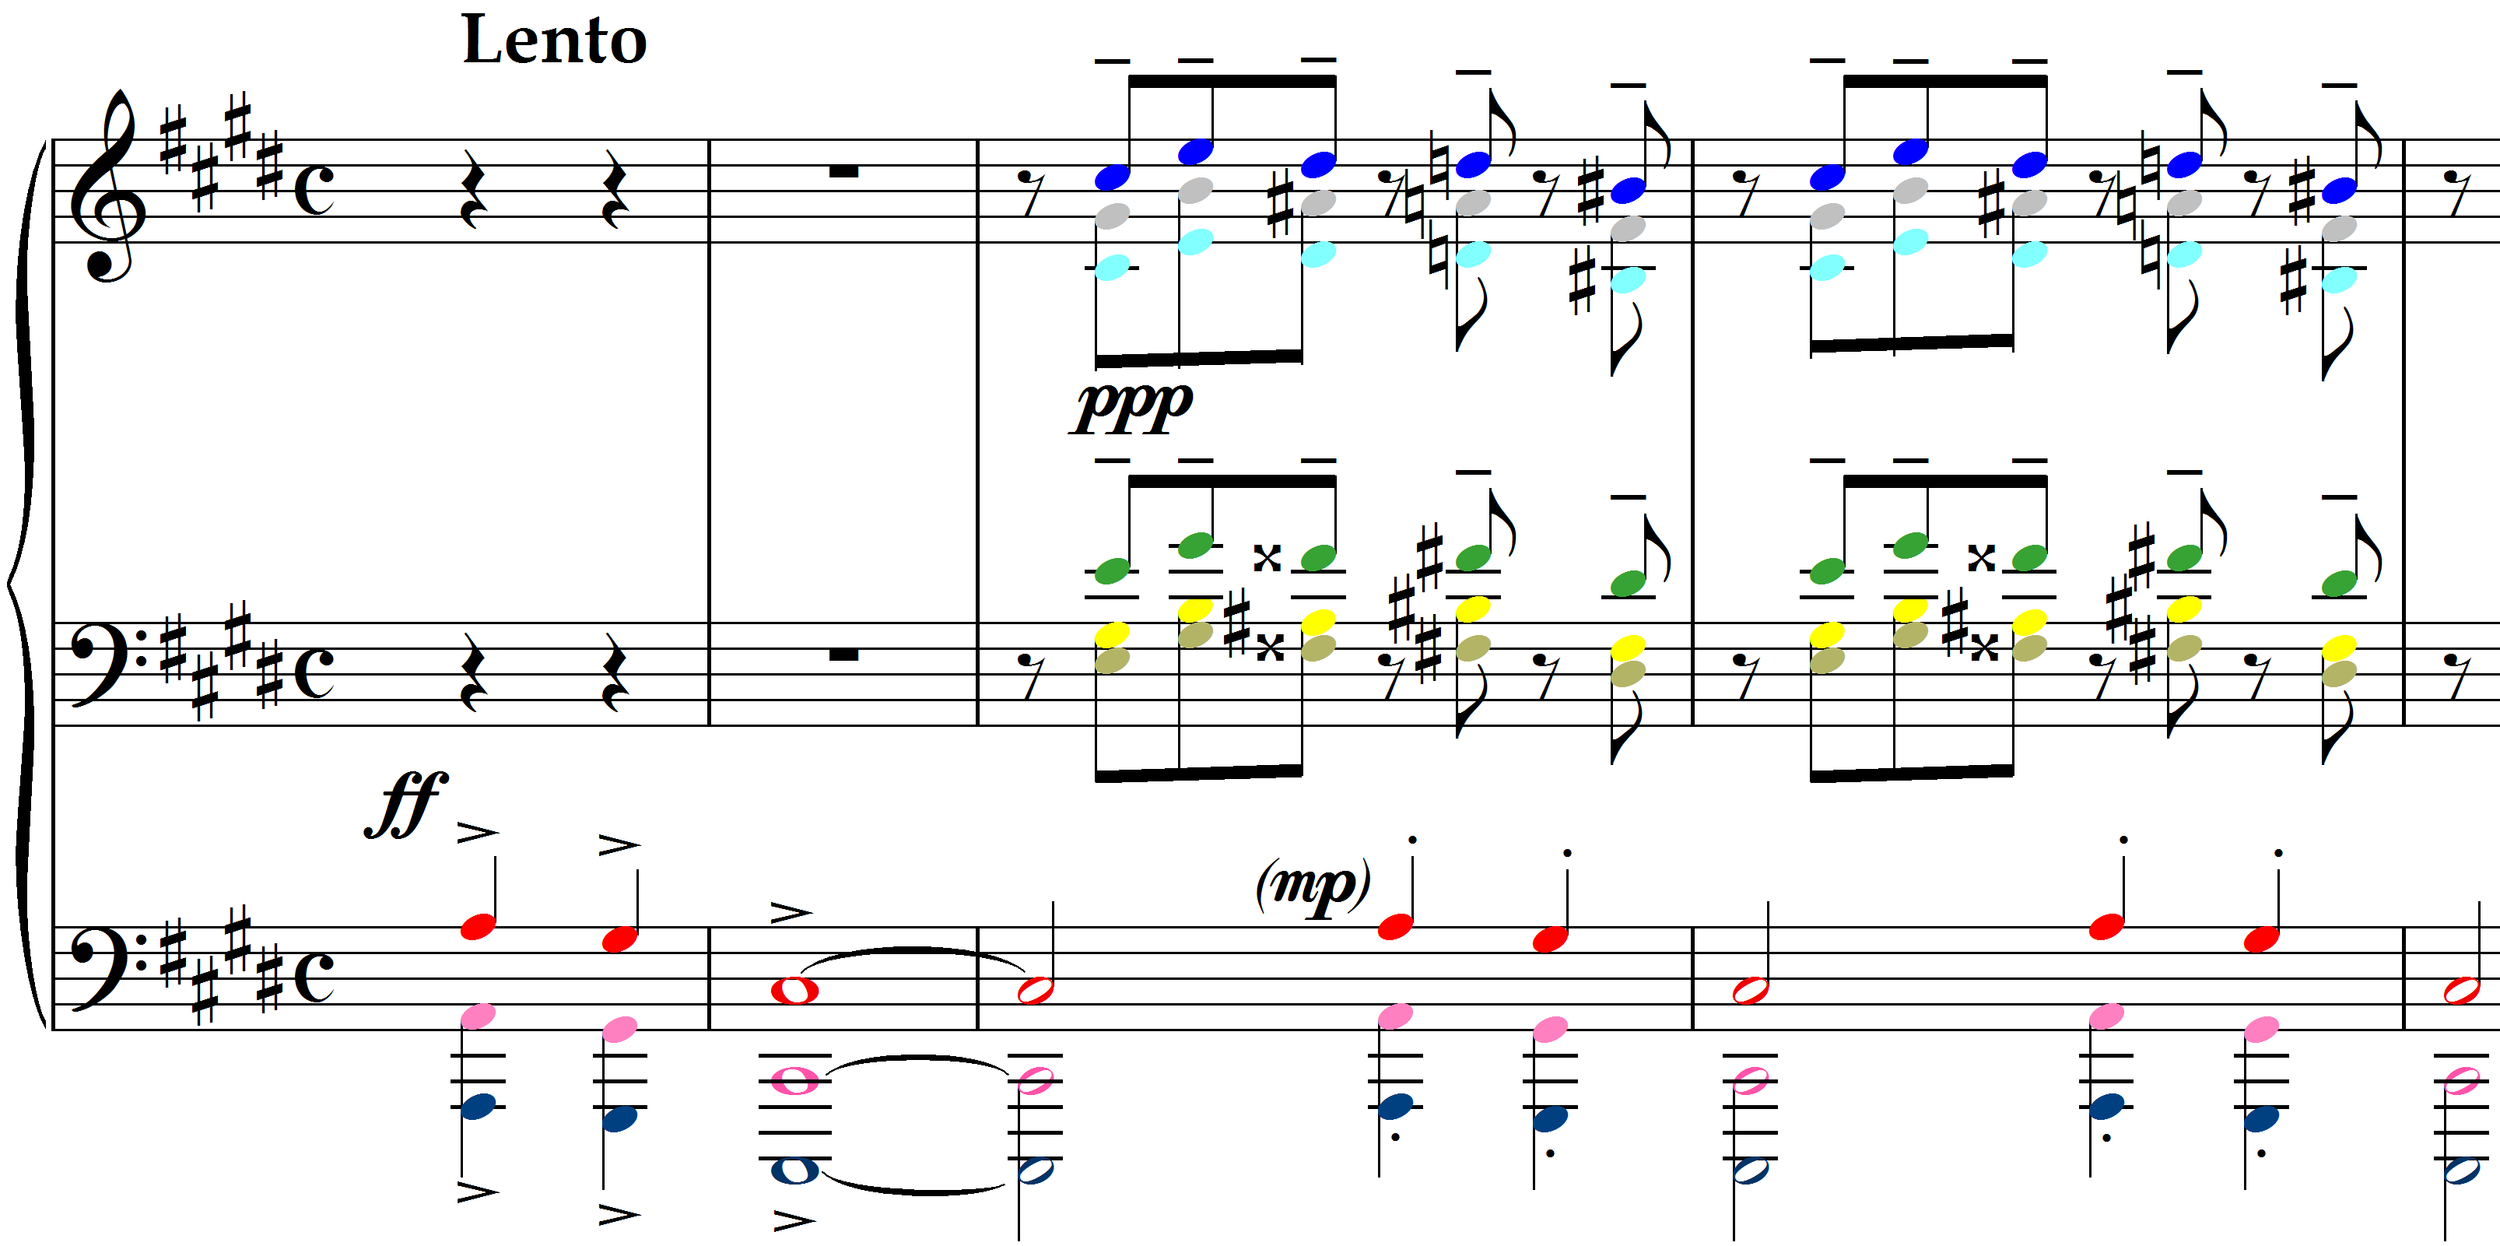 zen-and-the-art-of-piano-david-michael-wolff-defining-the-color-levels-excerpt-1